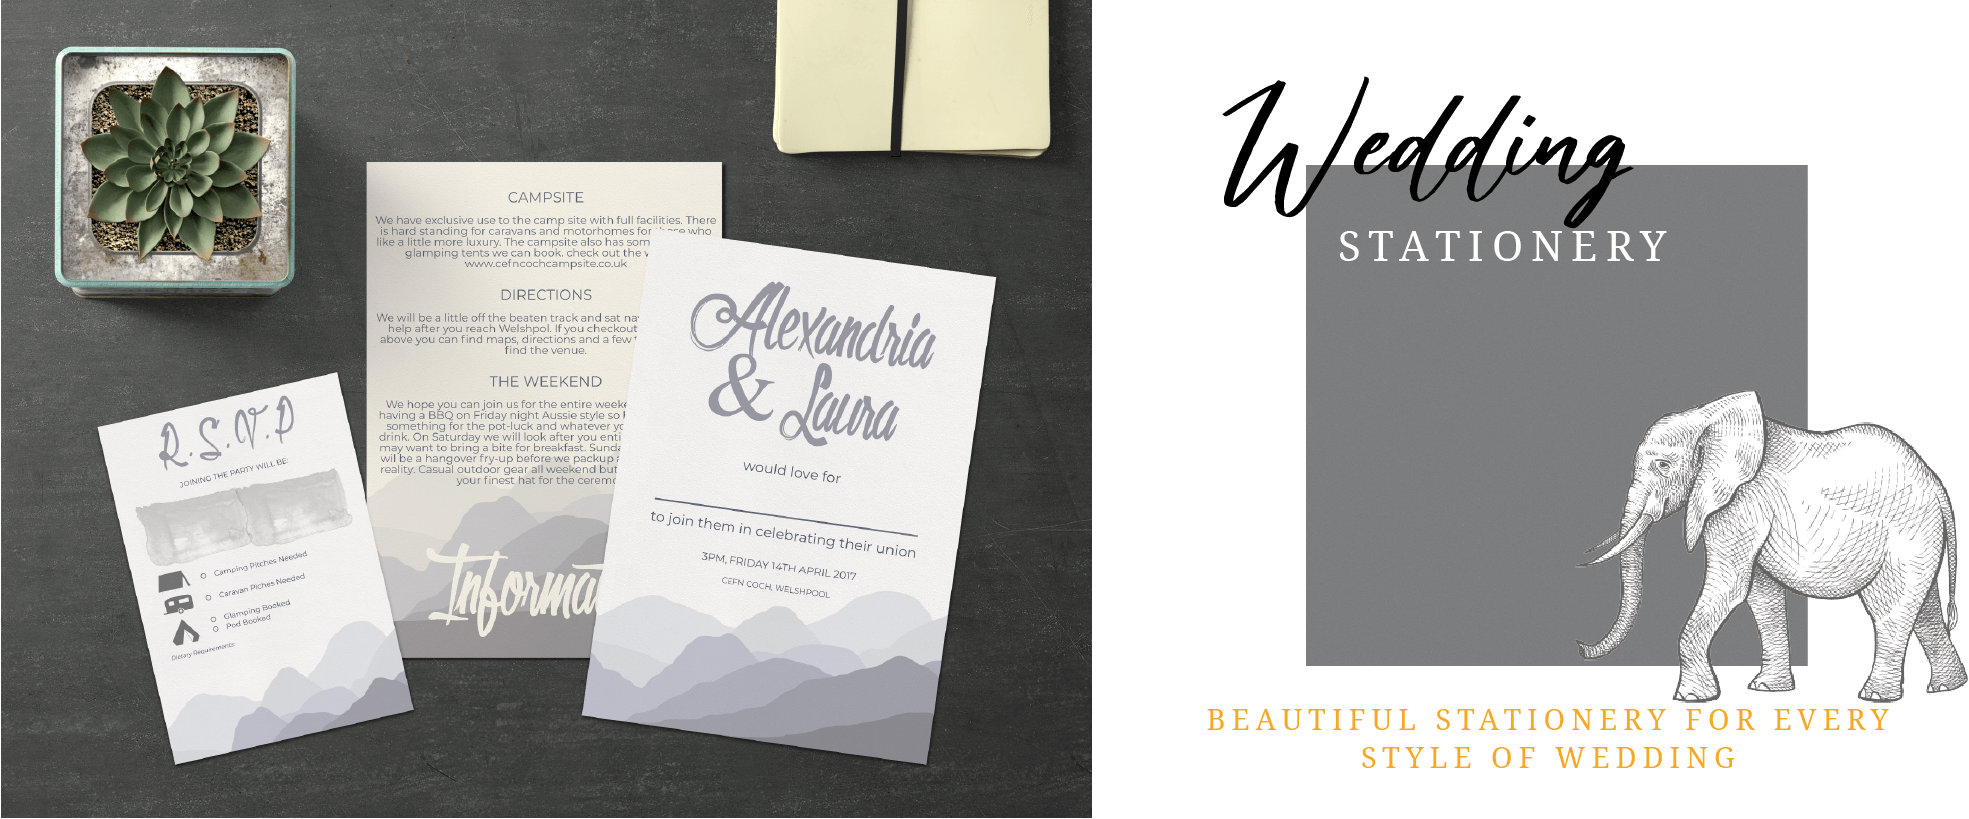 Mustard and Gray Wedding Stationery Hills design and flyer